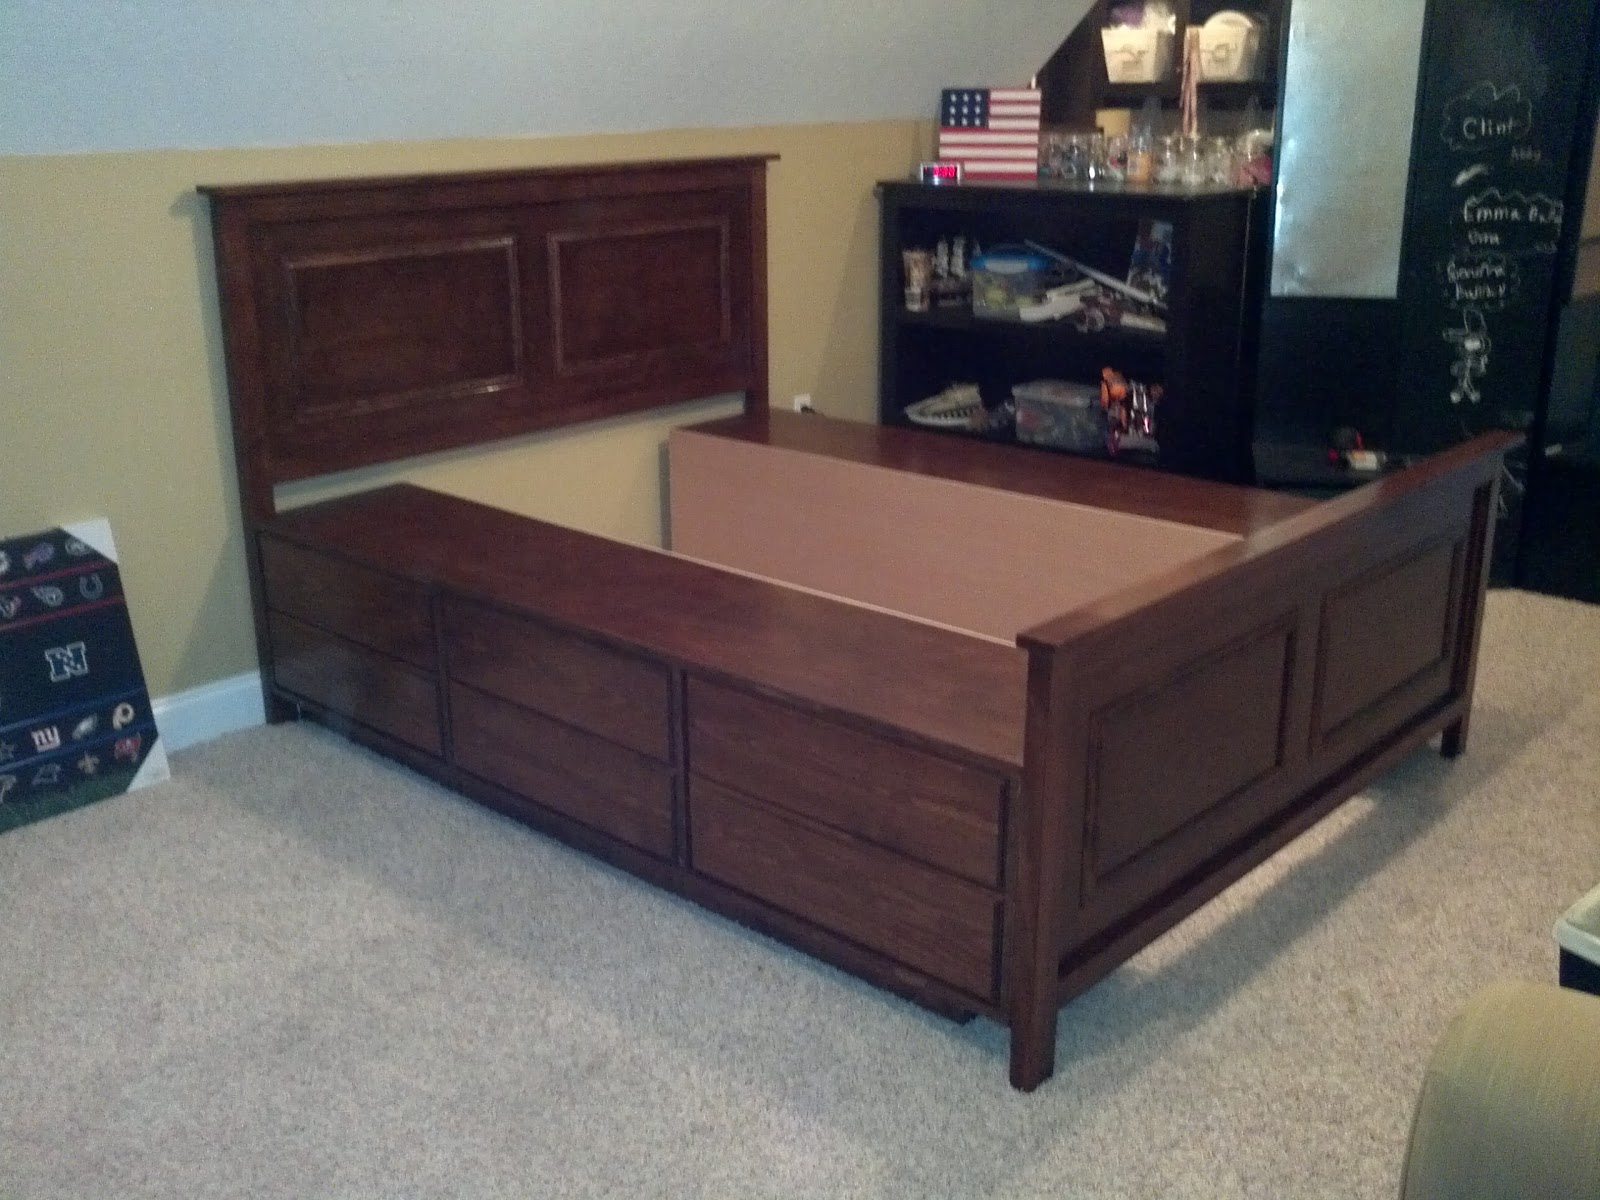 The Bullock 5 Queen Platform Storage Bed Diy